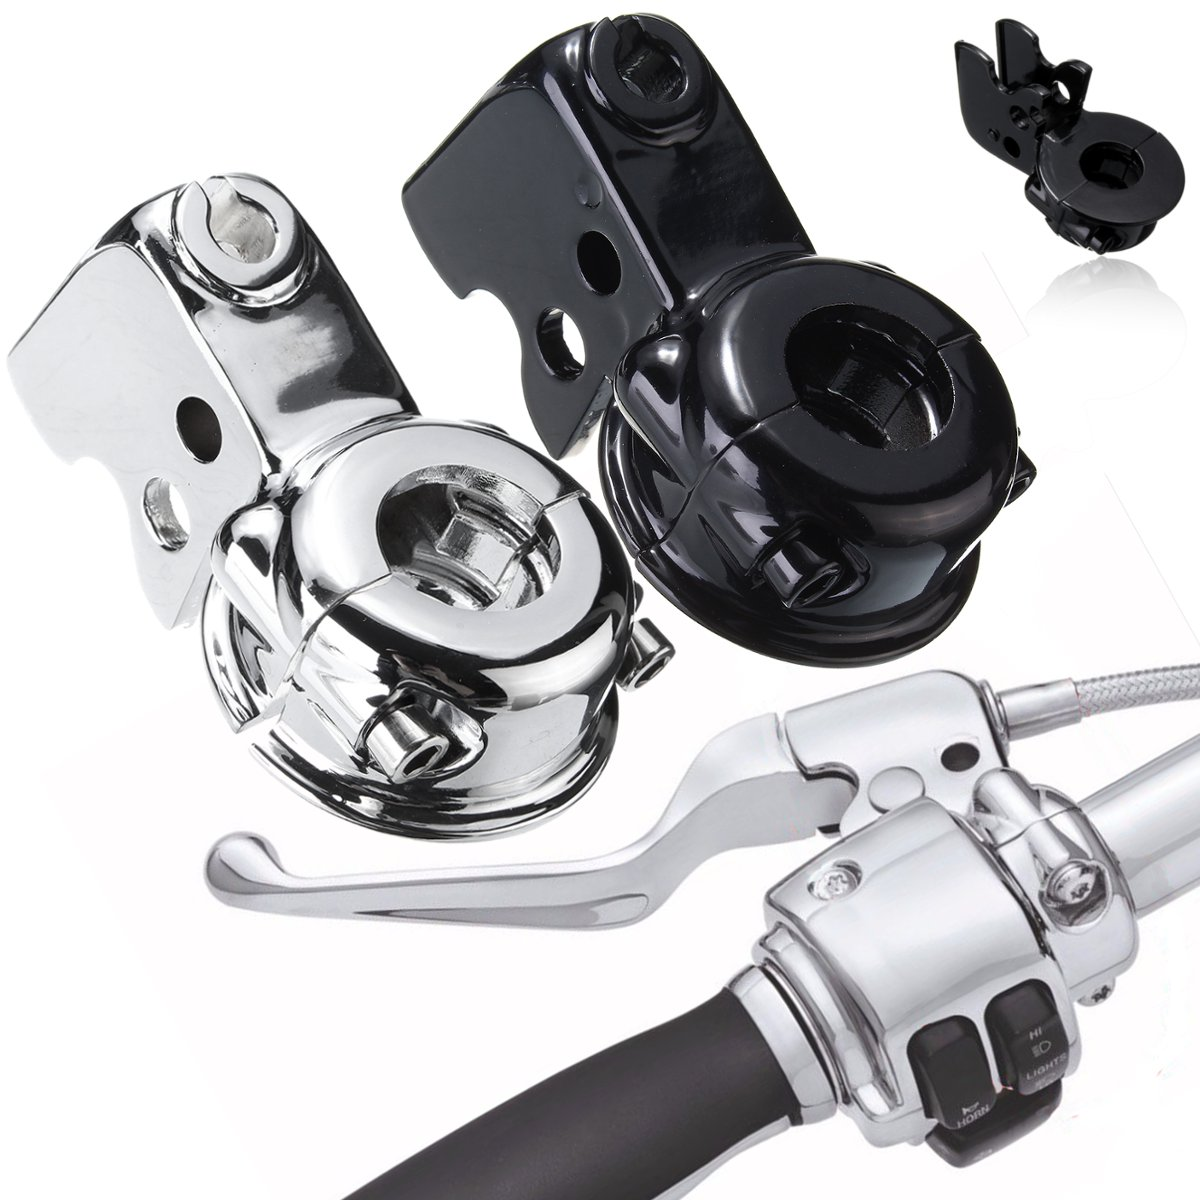 Motorcycle Clutch Lever Mount Bracket Perch For Harley Touring Glide Softail Dyna Sportster 883 Chrome Black<br><br>Aliexpress